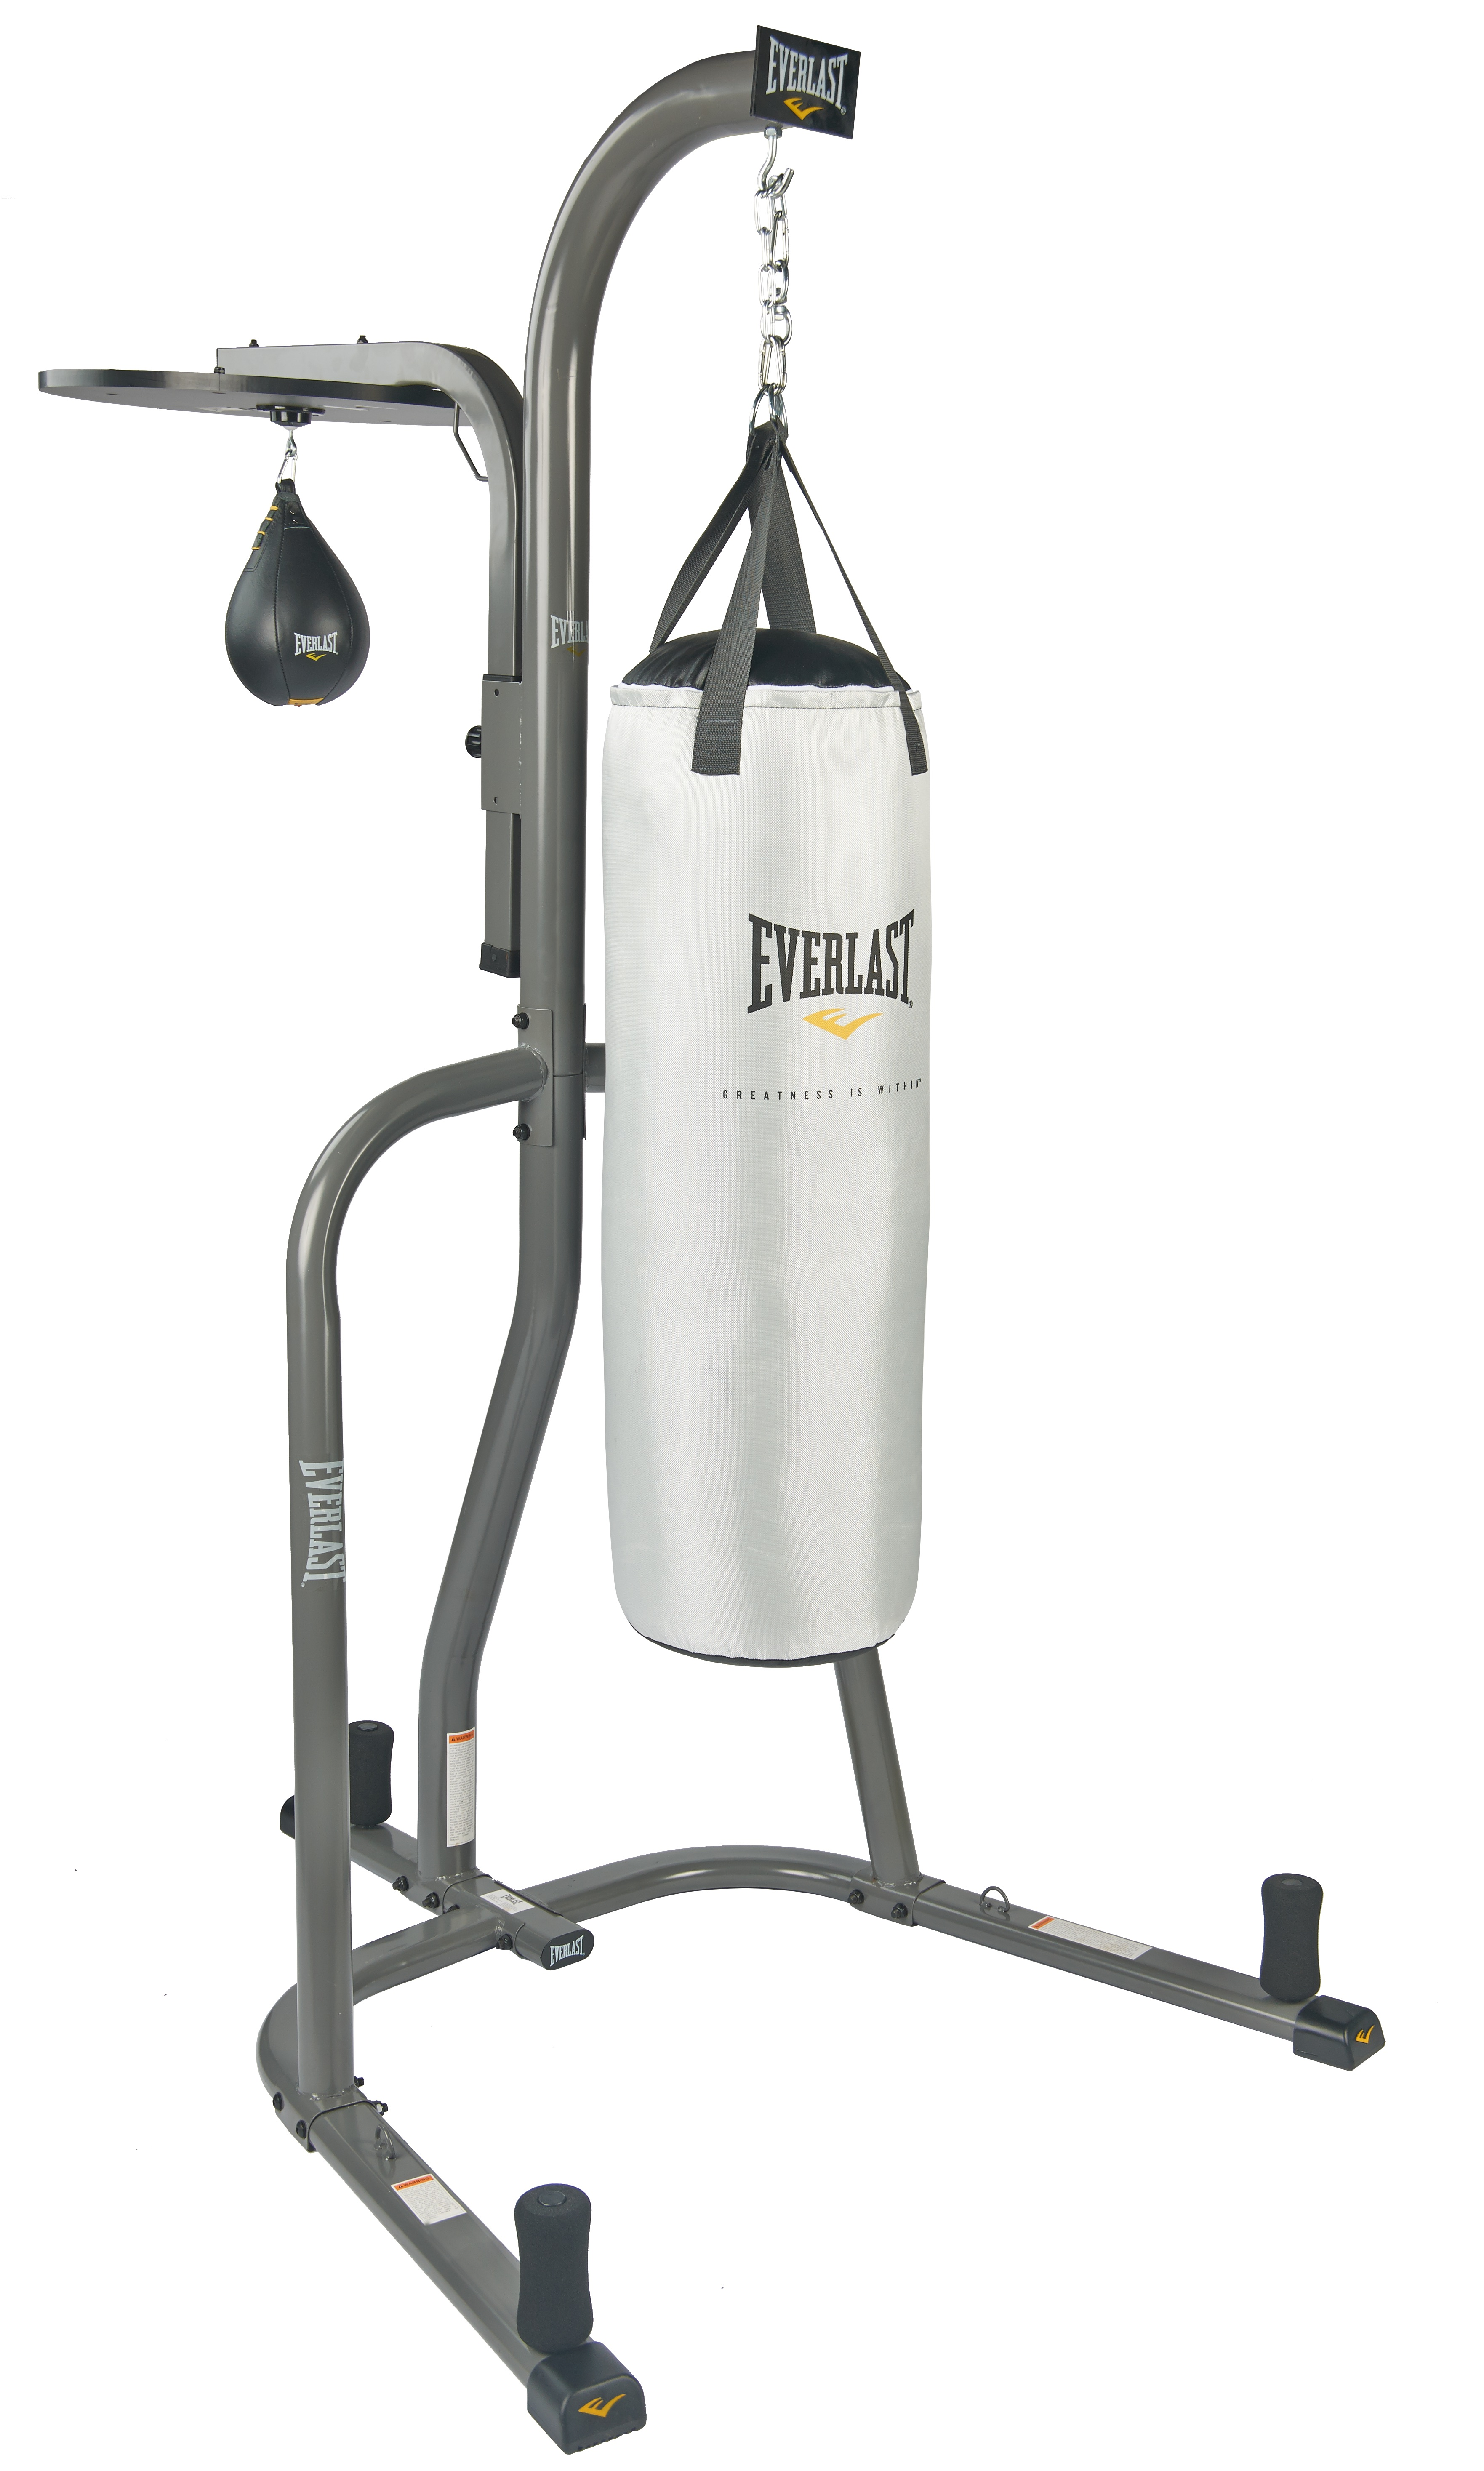 Everlast Dual Station Stand with Speed and 70 lb. Heavy Bag